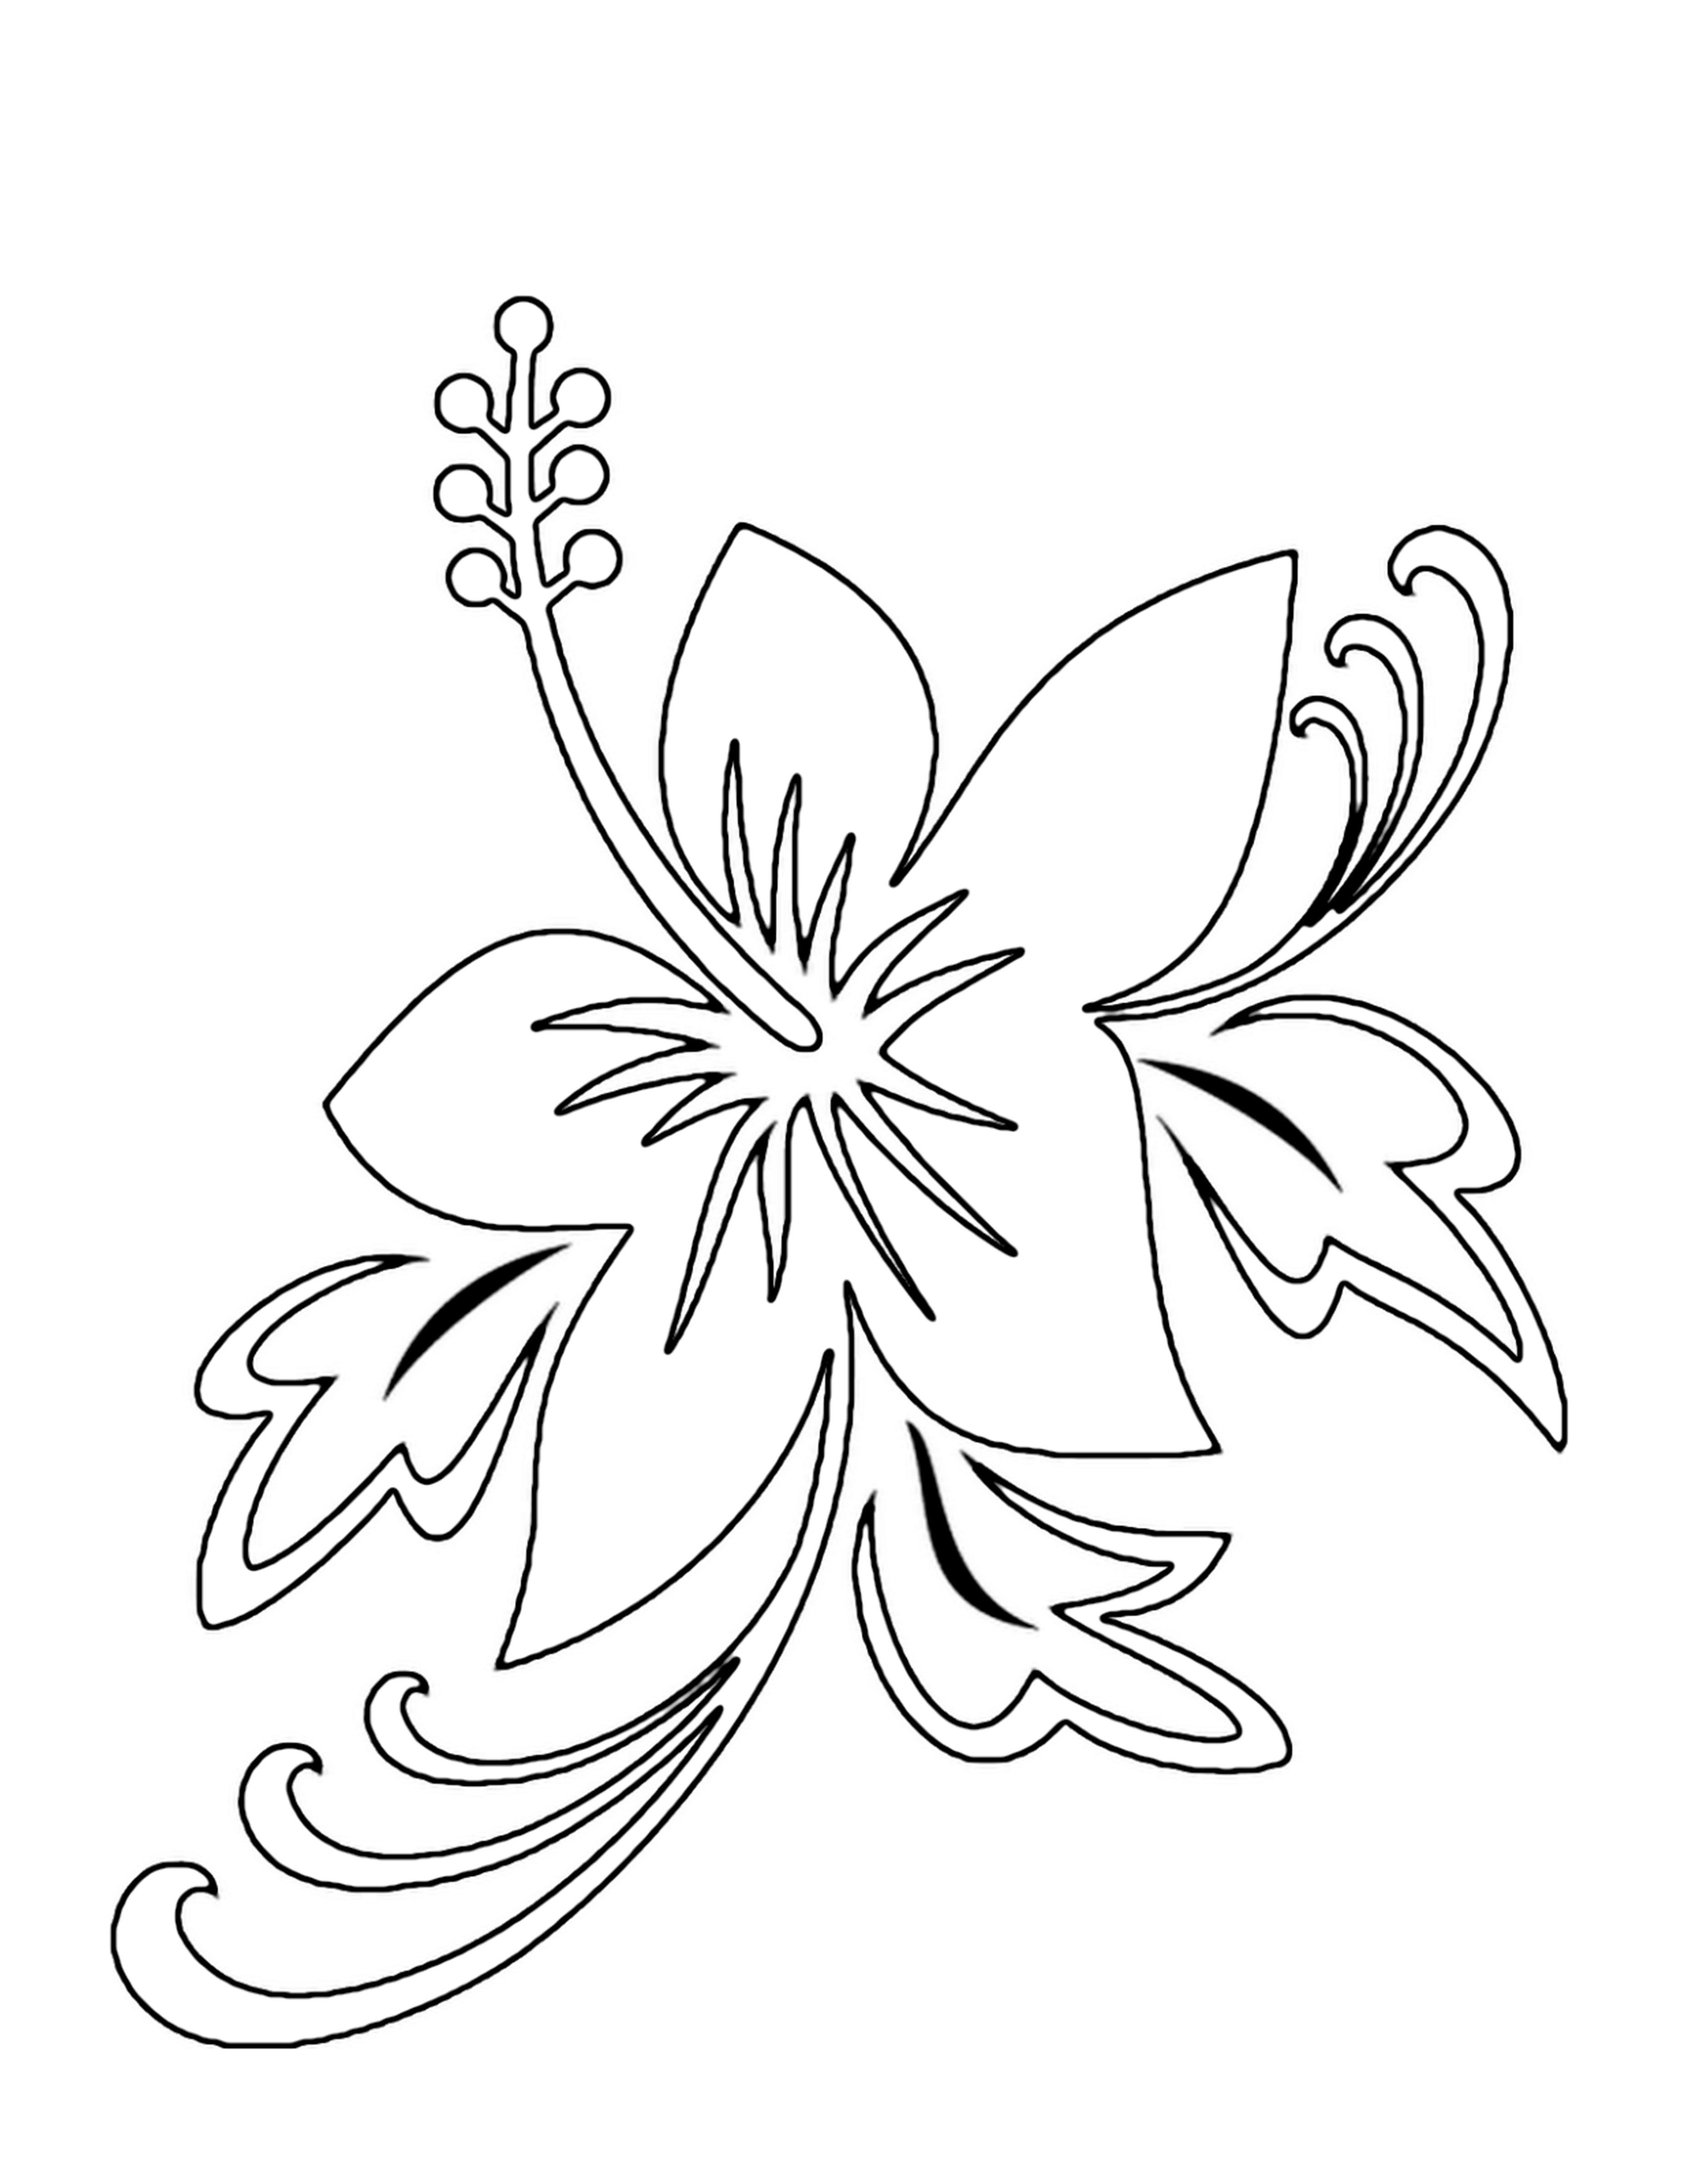 pictures to colour in of flowers spring flowers coloring page free printable coloring pages colour in flowers to of pictures